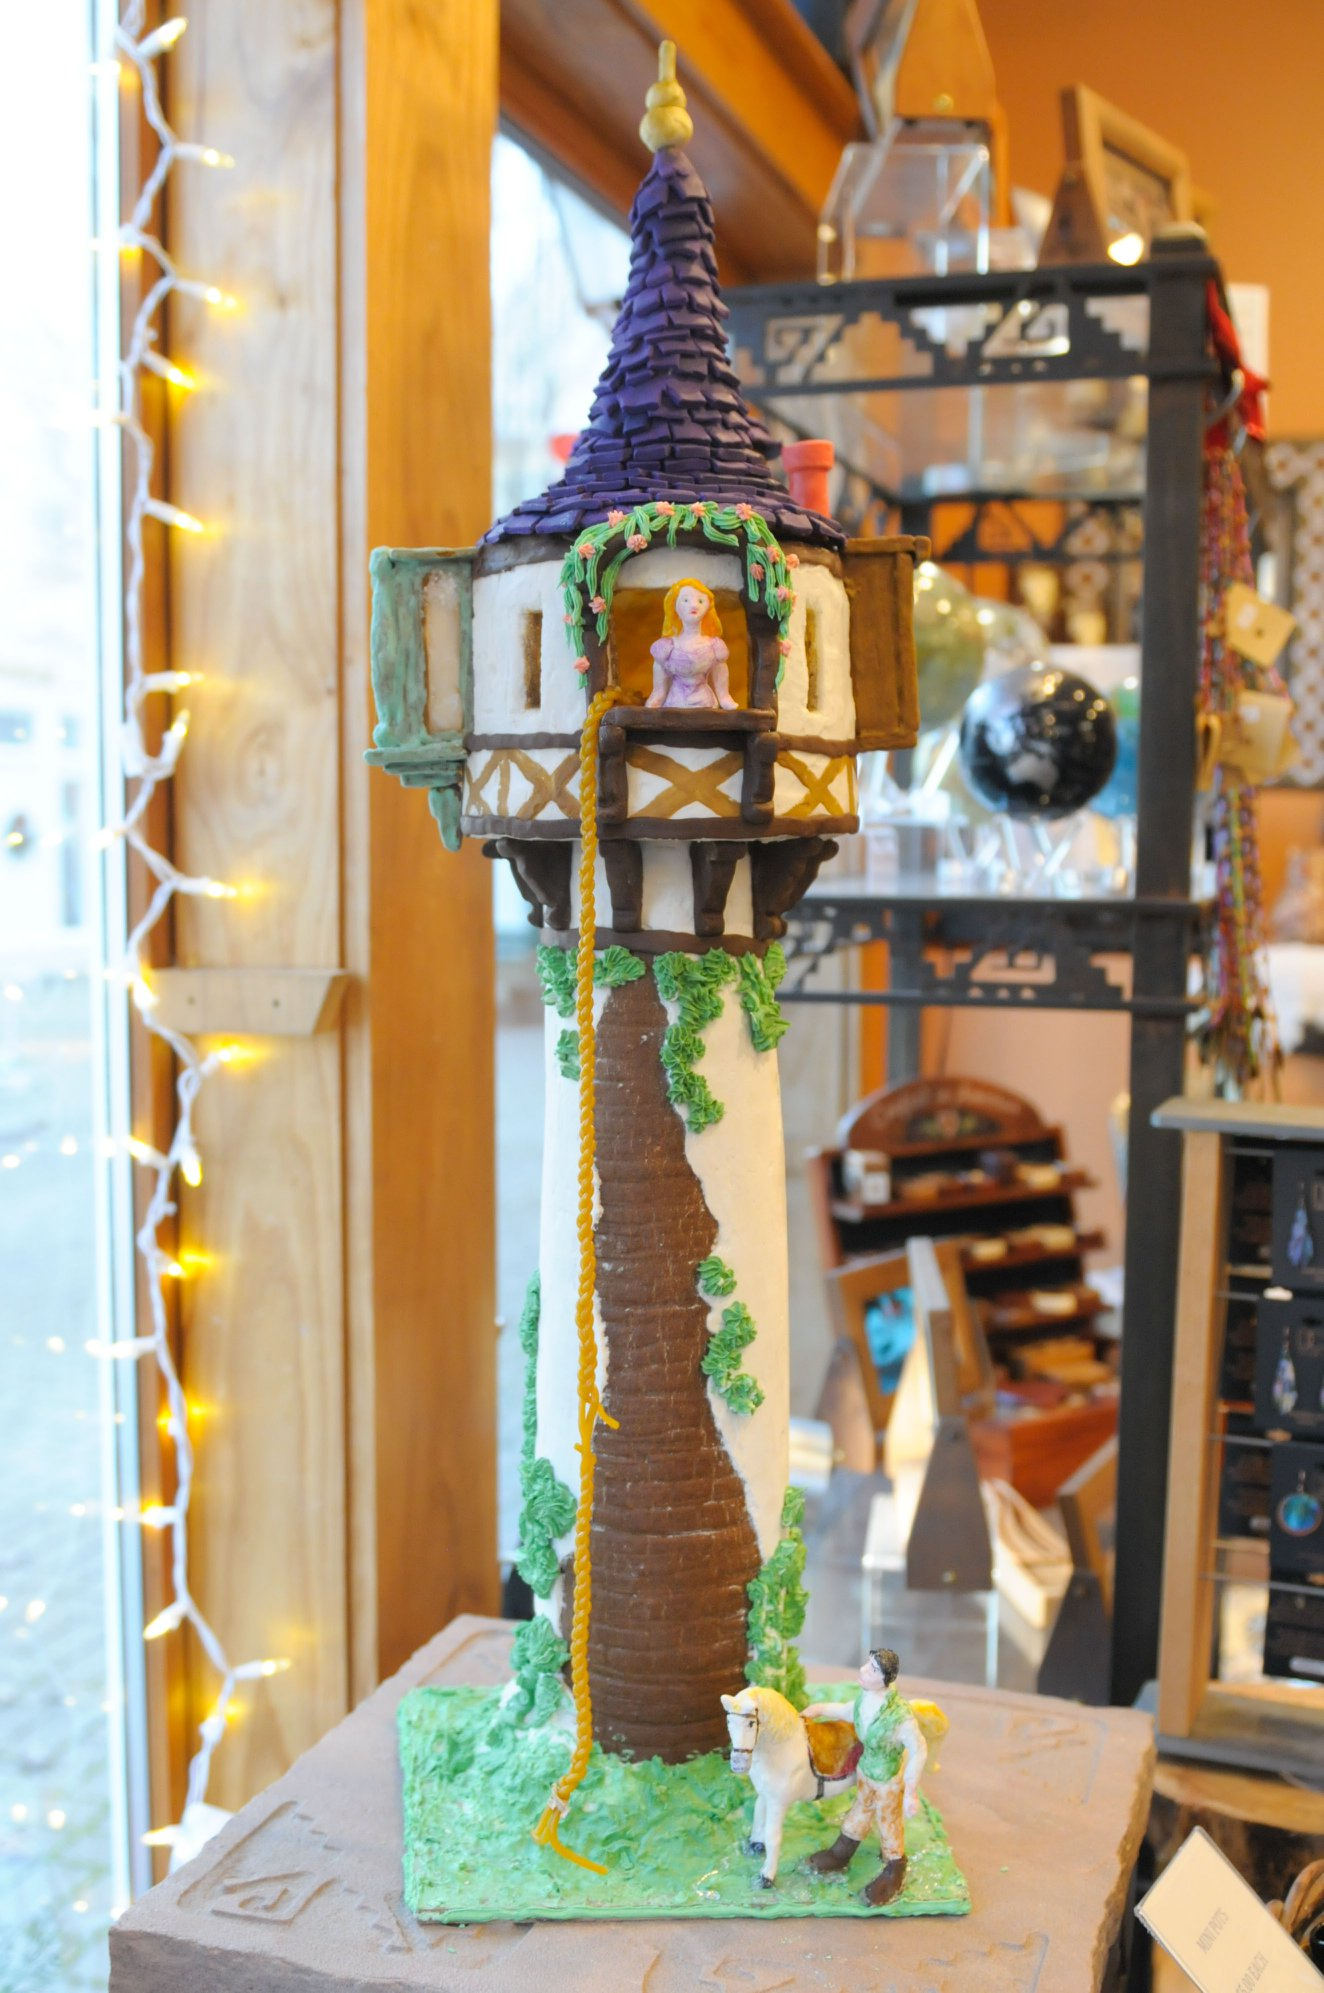 <strong>Rapunzel and her tower were captured in cookies by Sue Hanneman, whose baking and decorating efforts won her second place in the Kent, Conn., Gingerbread Festival.</strong><em><strong>Photo by Melissa Roth Chernisk</strong></em>